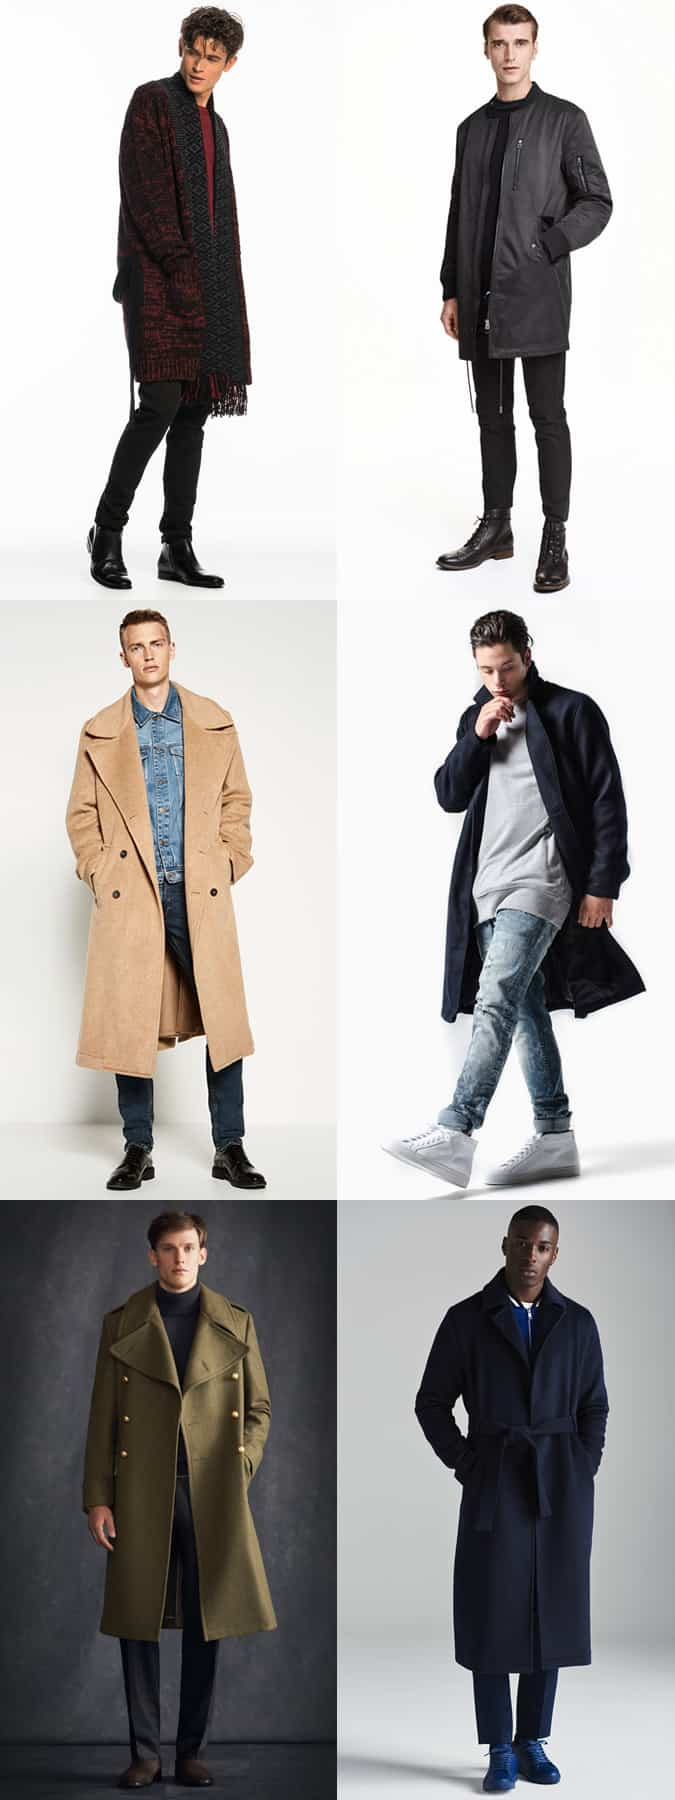 Men's Oversized Coats and Longline Jacket Outfit inspiration lookbook